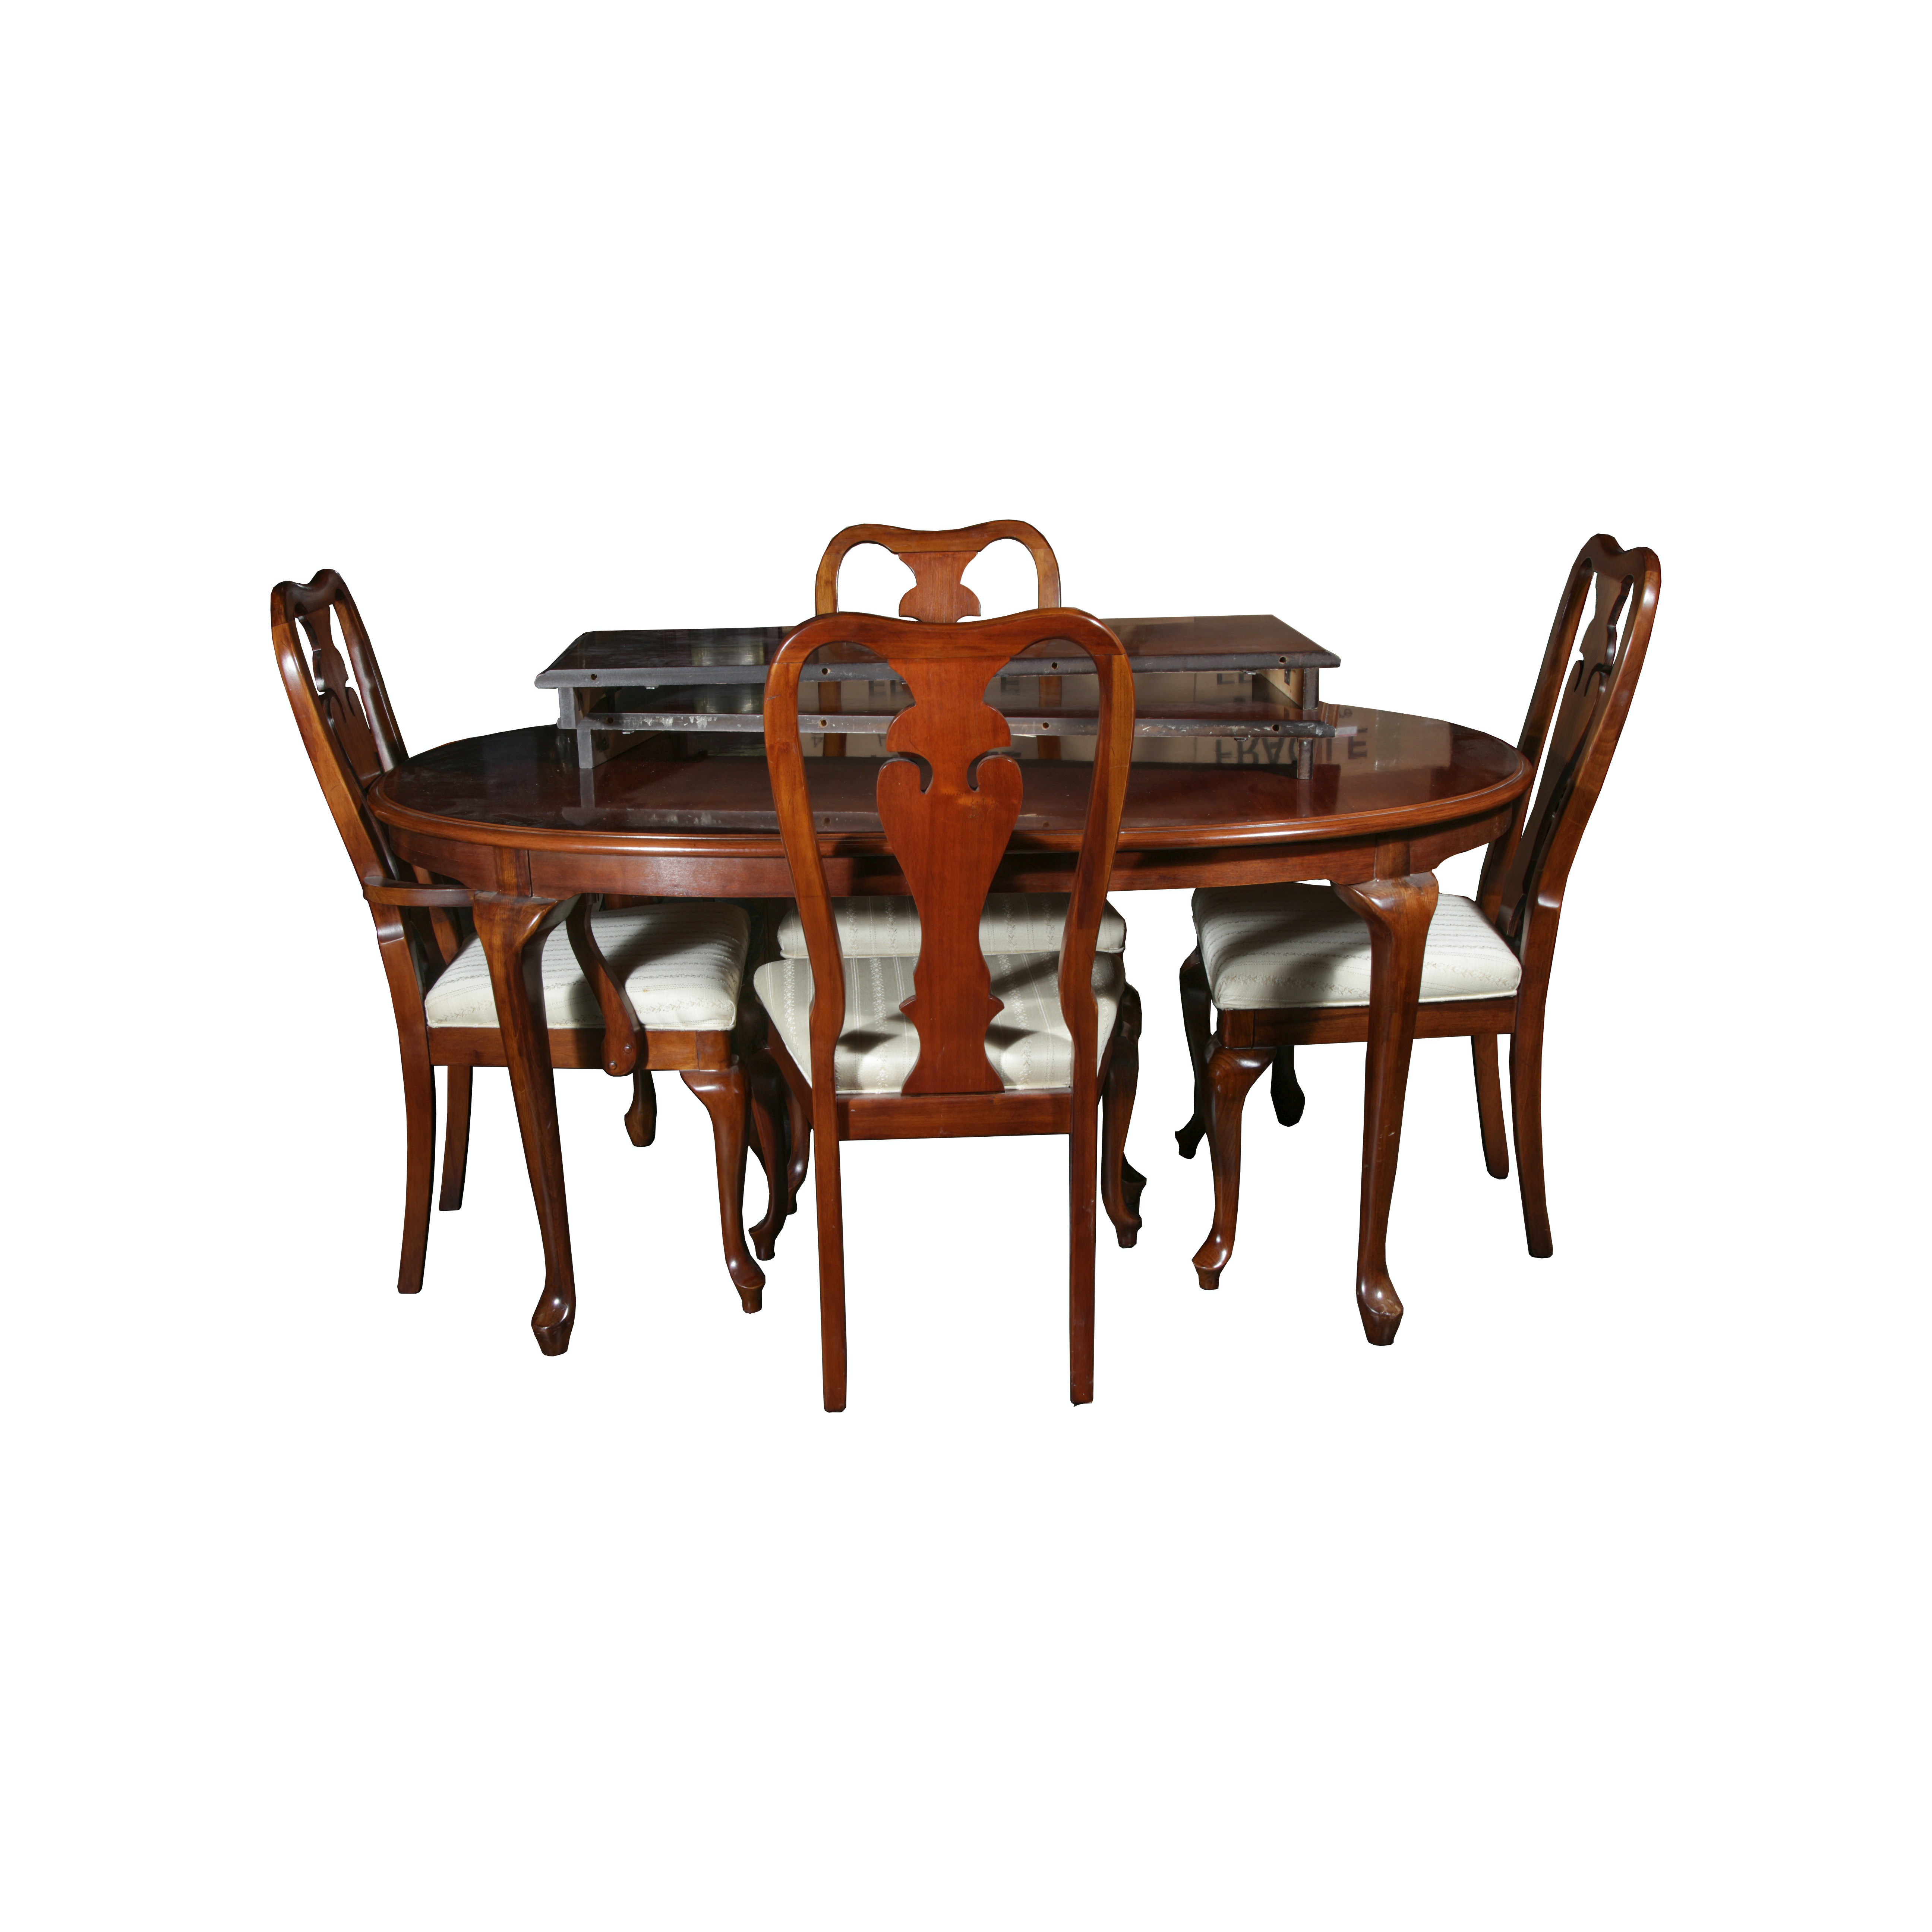 Bernhardt Queen Anne Style Mahogany Dining Table and  : IMG5839JPGixlibrb 11 from www.ebth.com size 880 x 906 jpeg 67kB